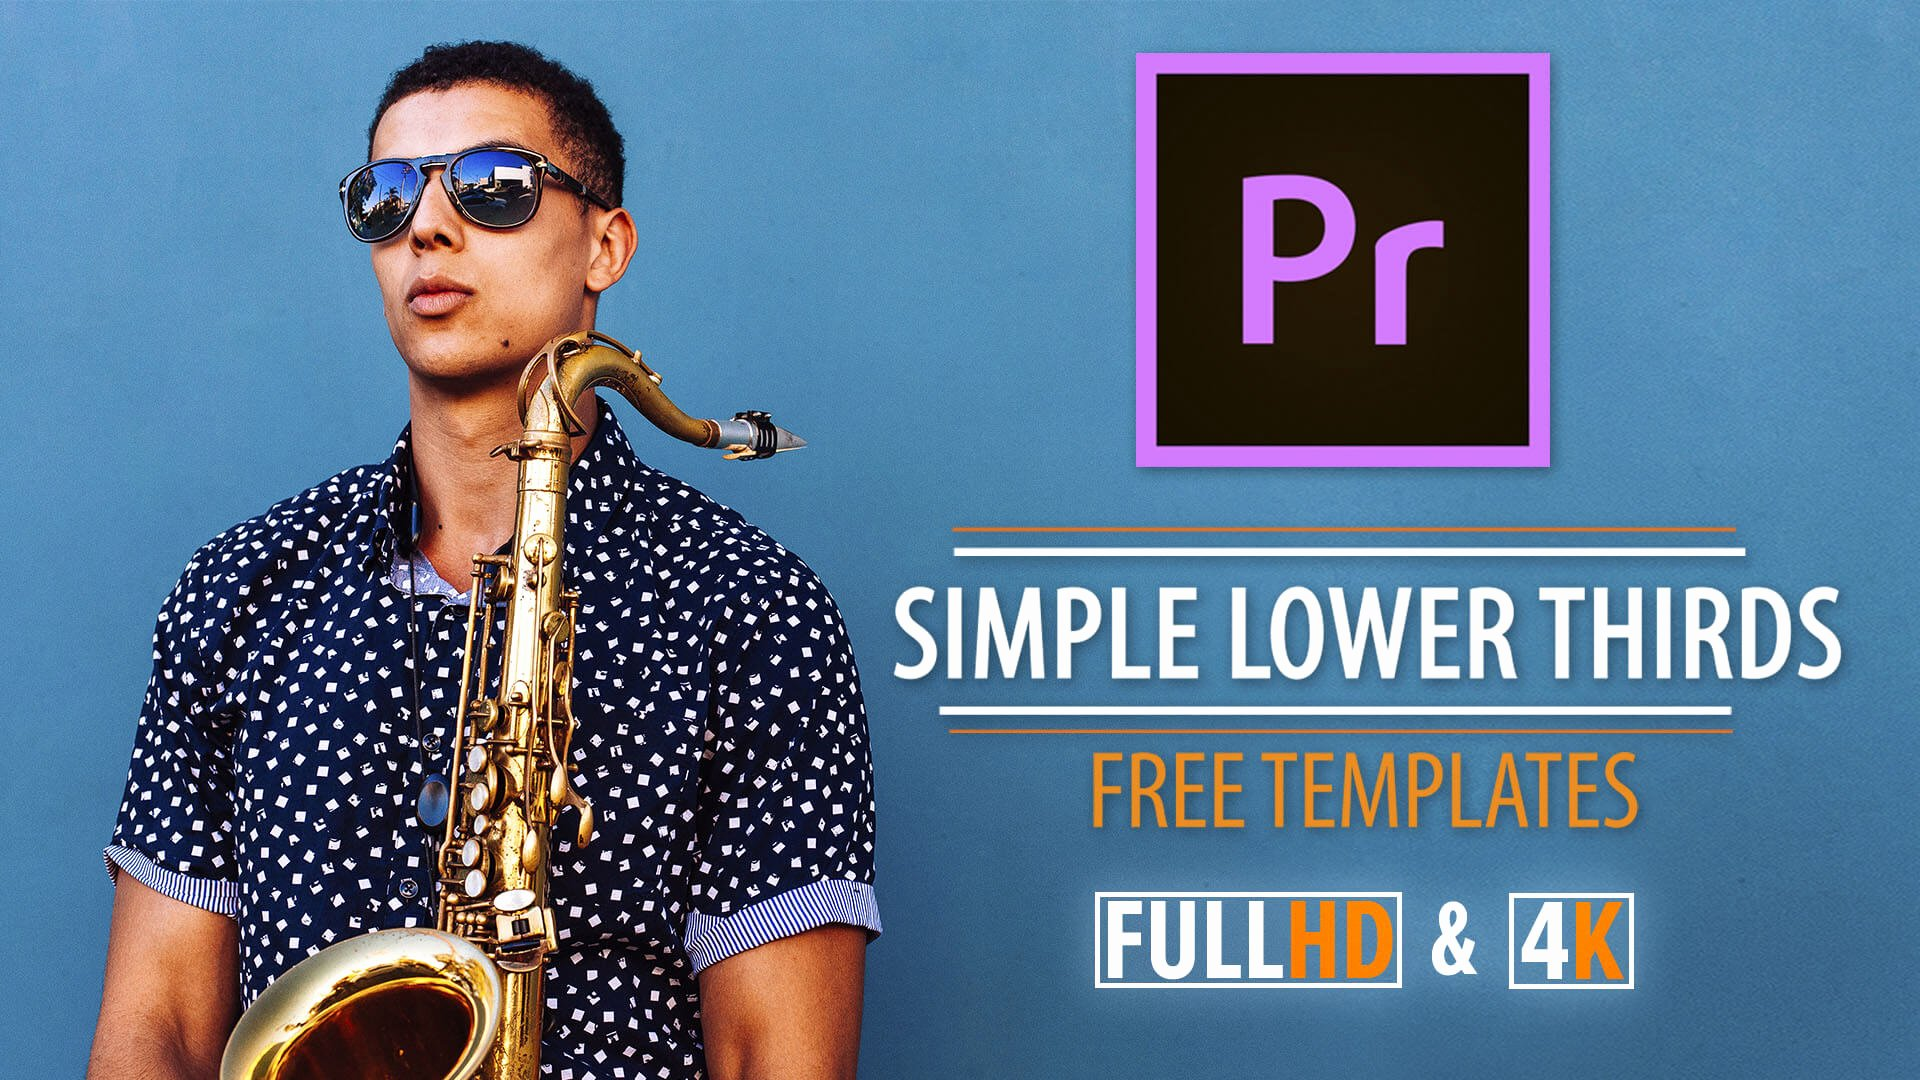 Simple Lower Thirds Templates for Premiere Pro